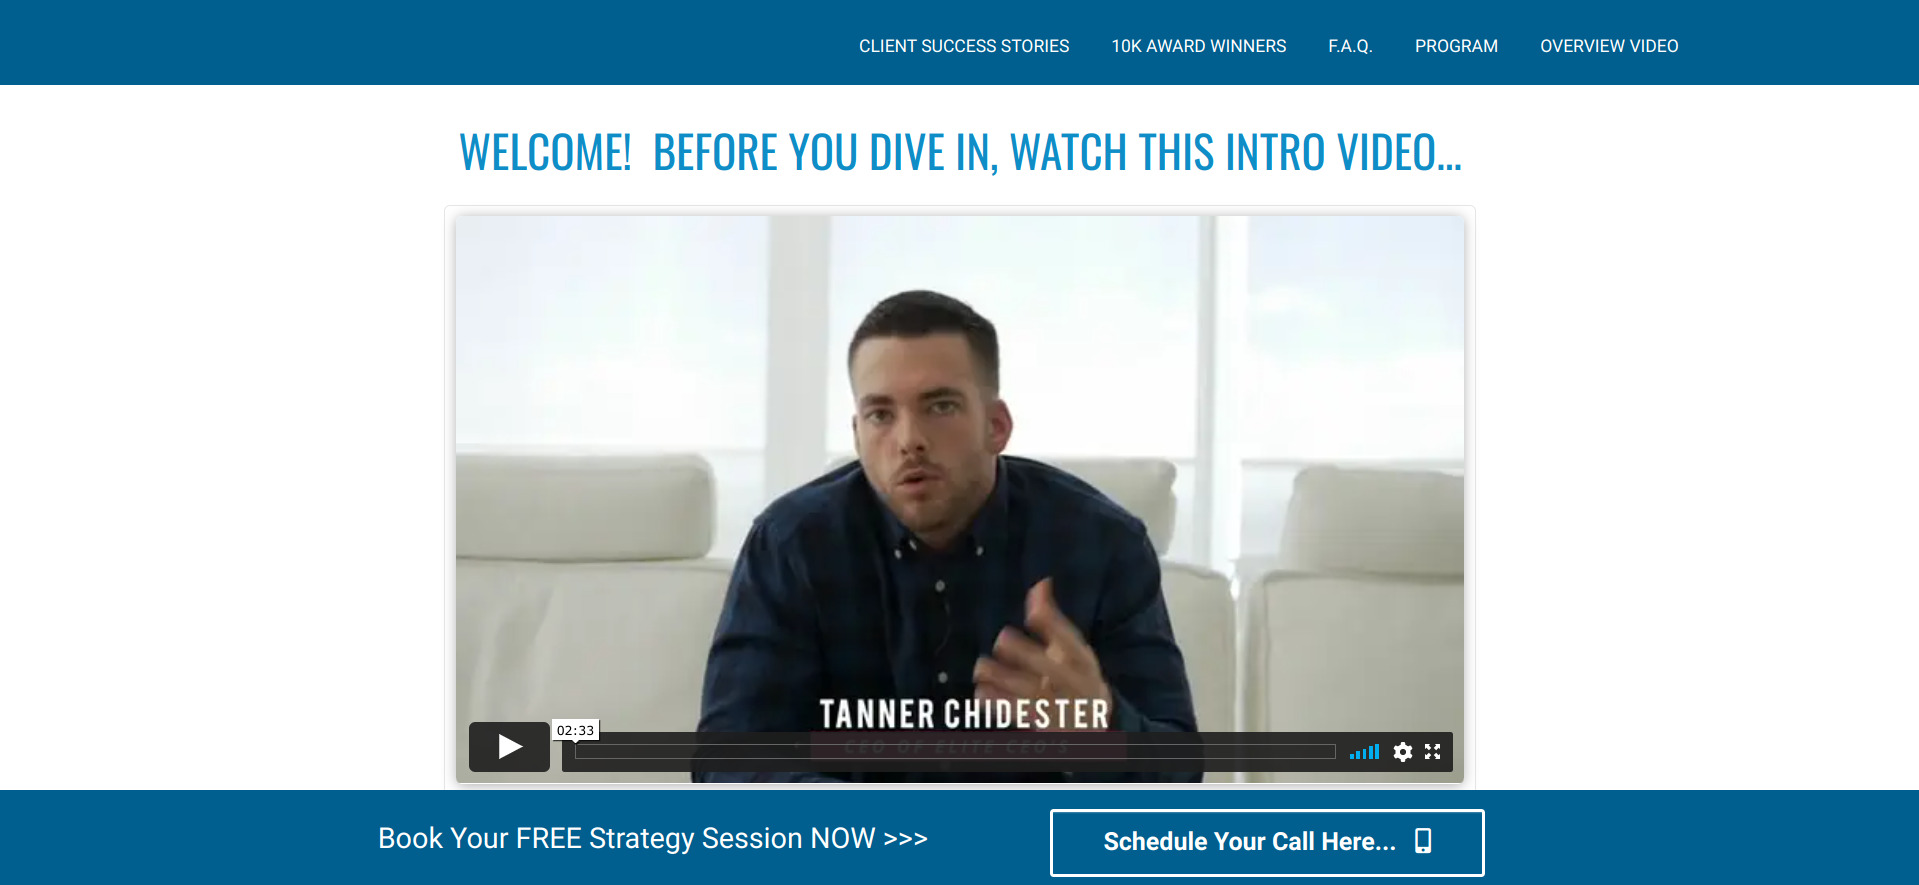 Is Tanner Chidester Elite CEOS a Scam or Legit